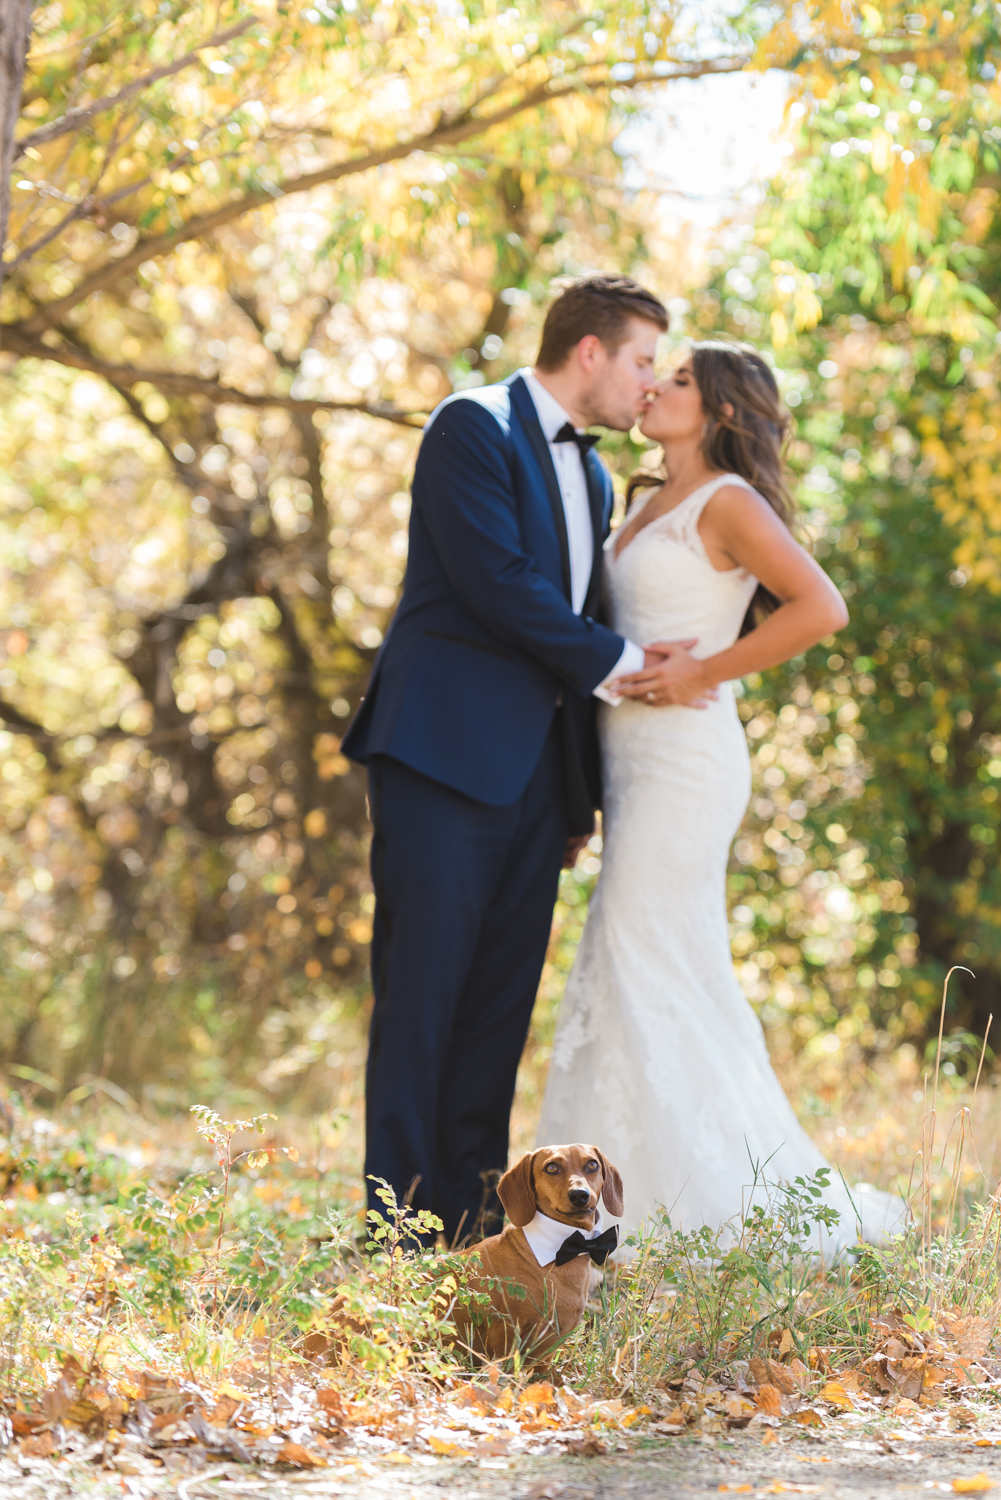 Wedding Photo with Dachshund | Pets In Human Photo Session